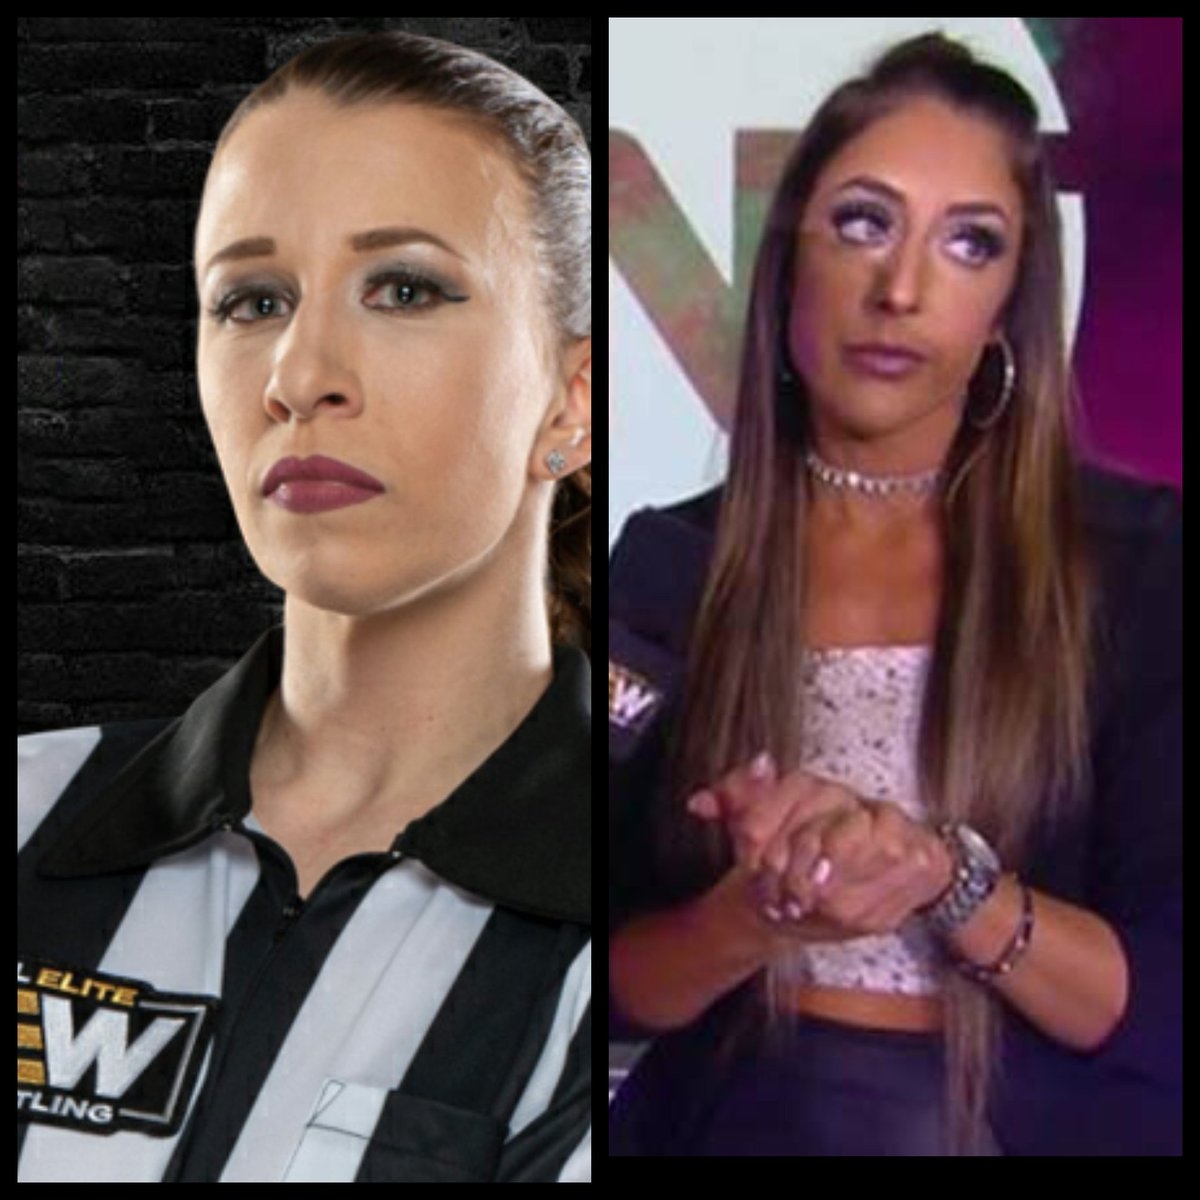 """Could @RealBrittBaker """"Conspiracy Theory"""" lead to @RefAubrey in ring confrontation with Britt? Would Aubry ever wrestle? 🤔 #thursdayvibes #AEWDynamite #AEWonTNT #AEW #WrestlingCommunity #WrestlingWednesday #WrestlingTwitterInTheDaylight  #WrestlingTwitter @tonyschiavone24 https://t.co/qnnlDwslZP"""